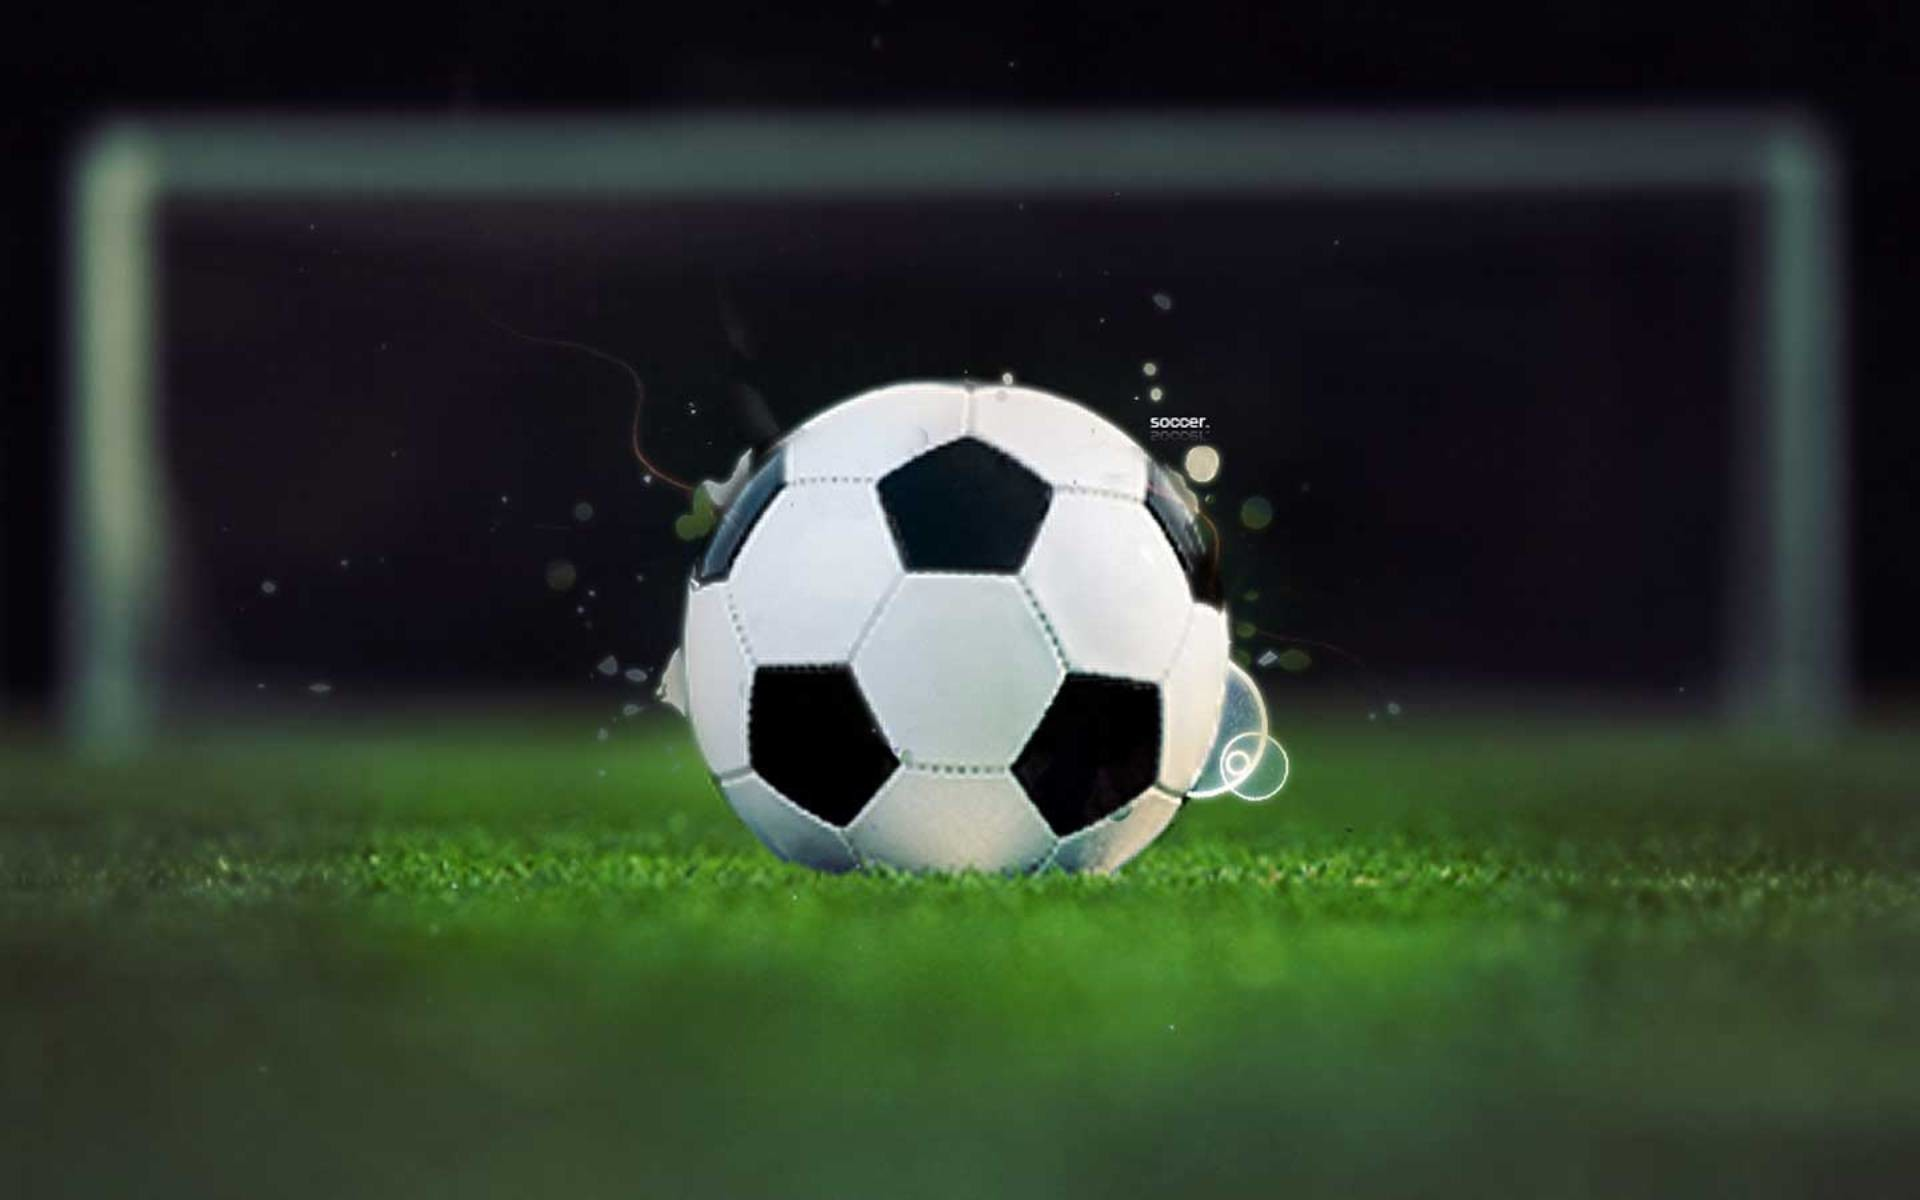 1920x1200 Soccer Ball Wallpaper Free Download Desktop Background Soccer .